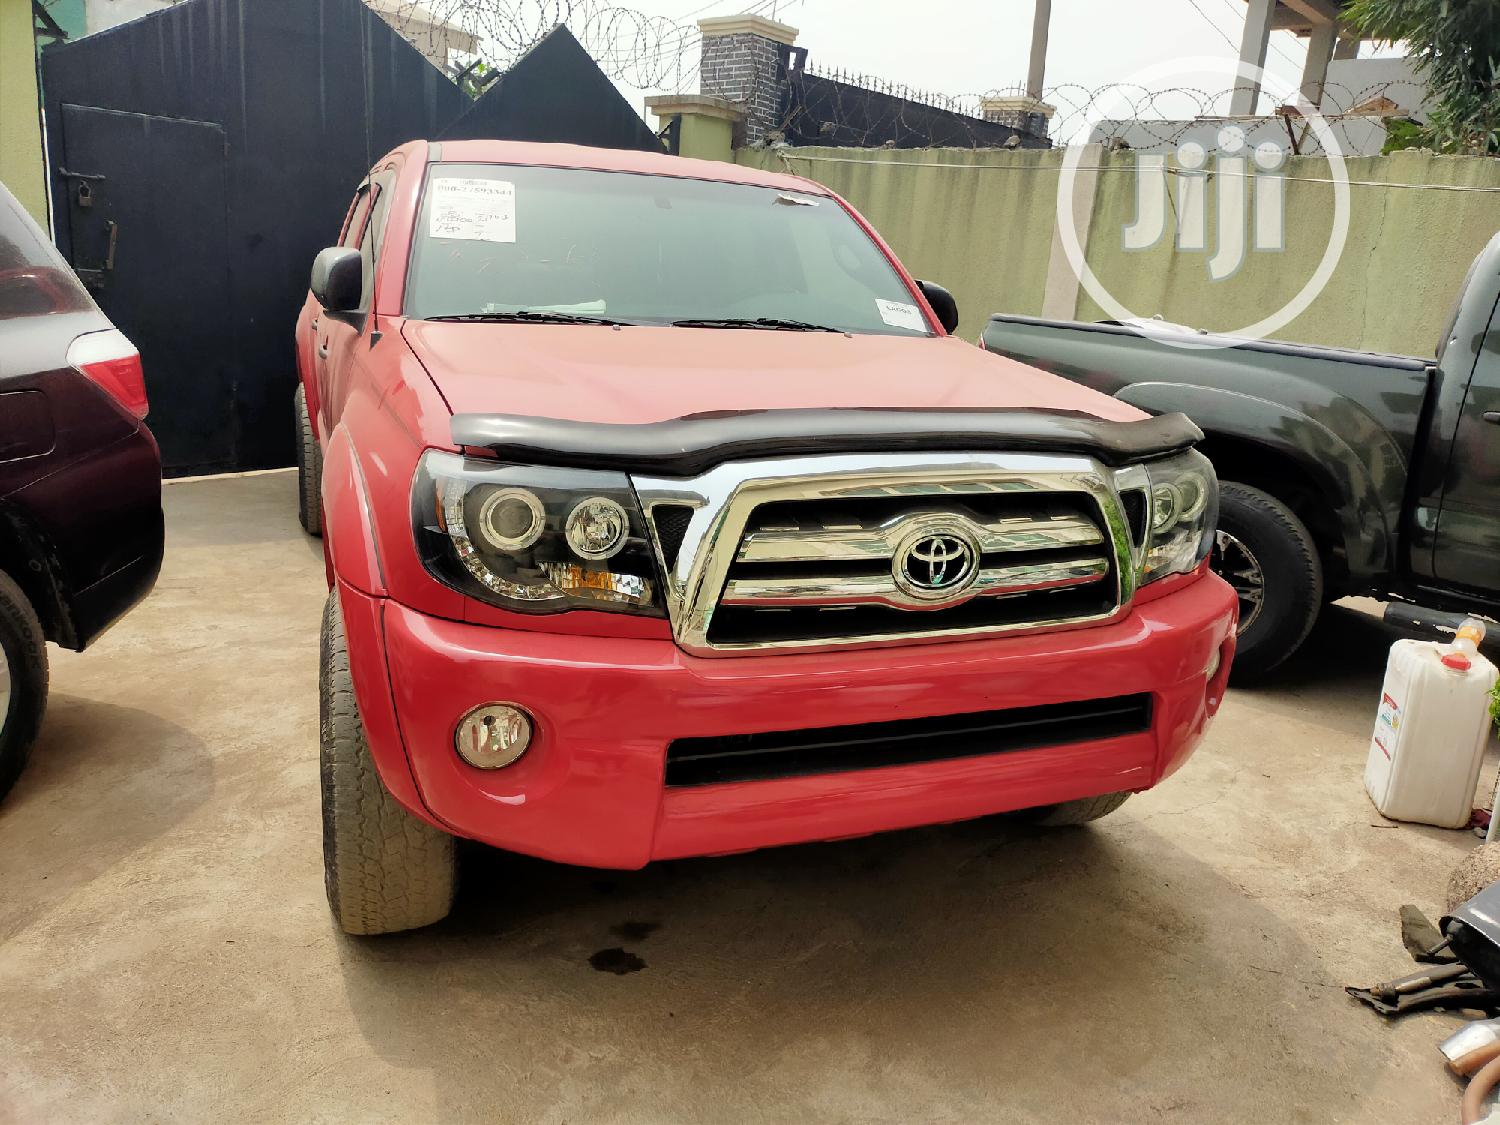 Toyota Tacoma 2007 PreRunner Access Red